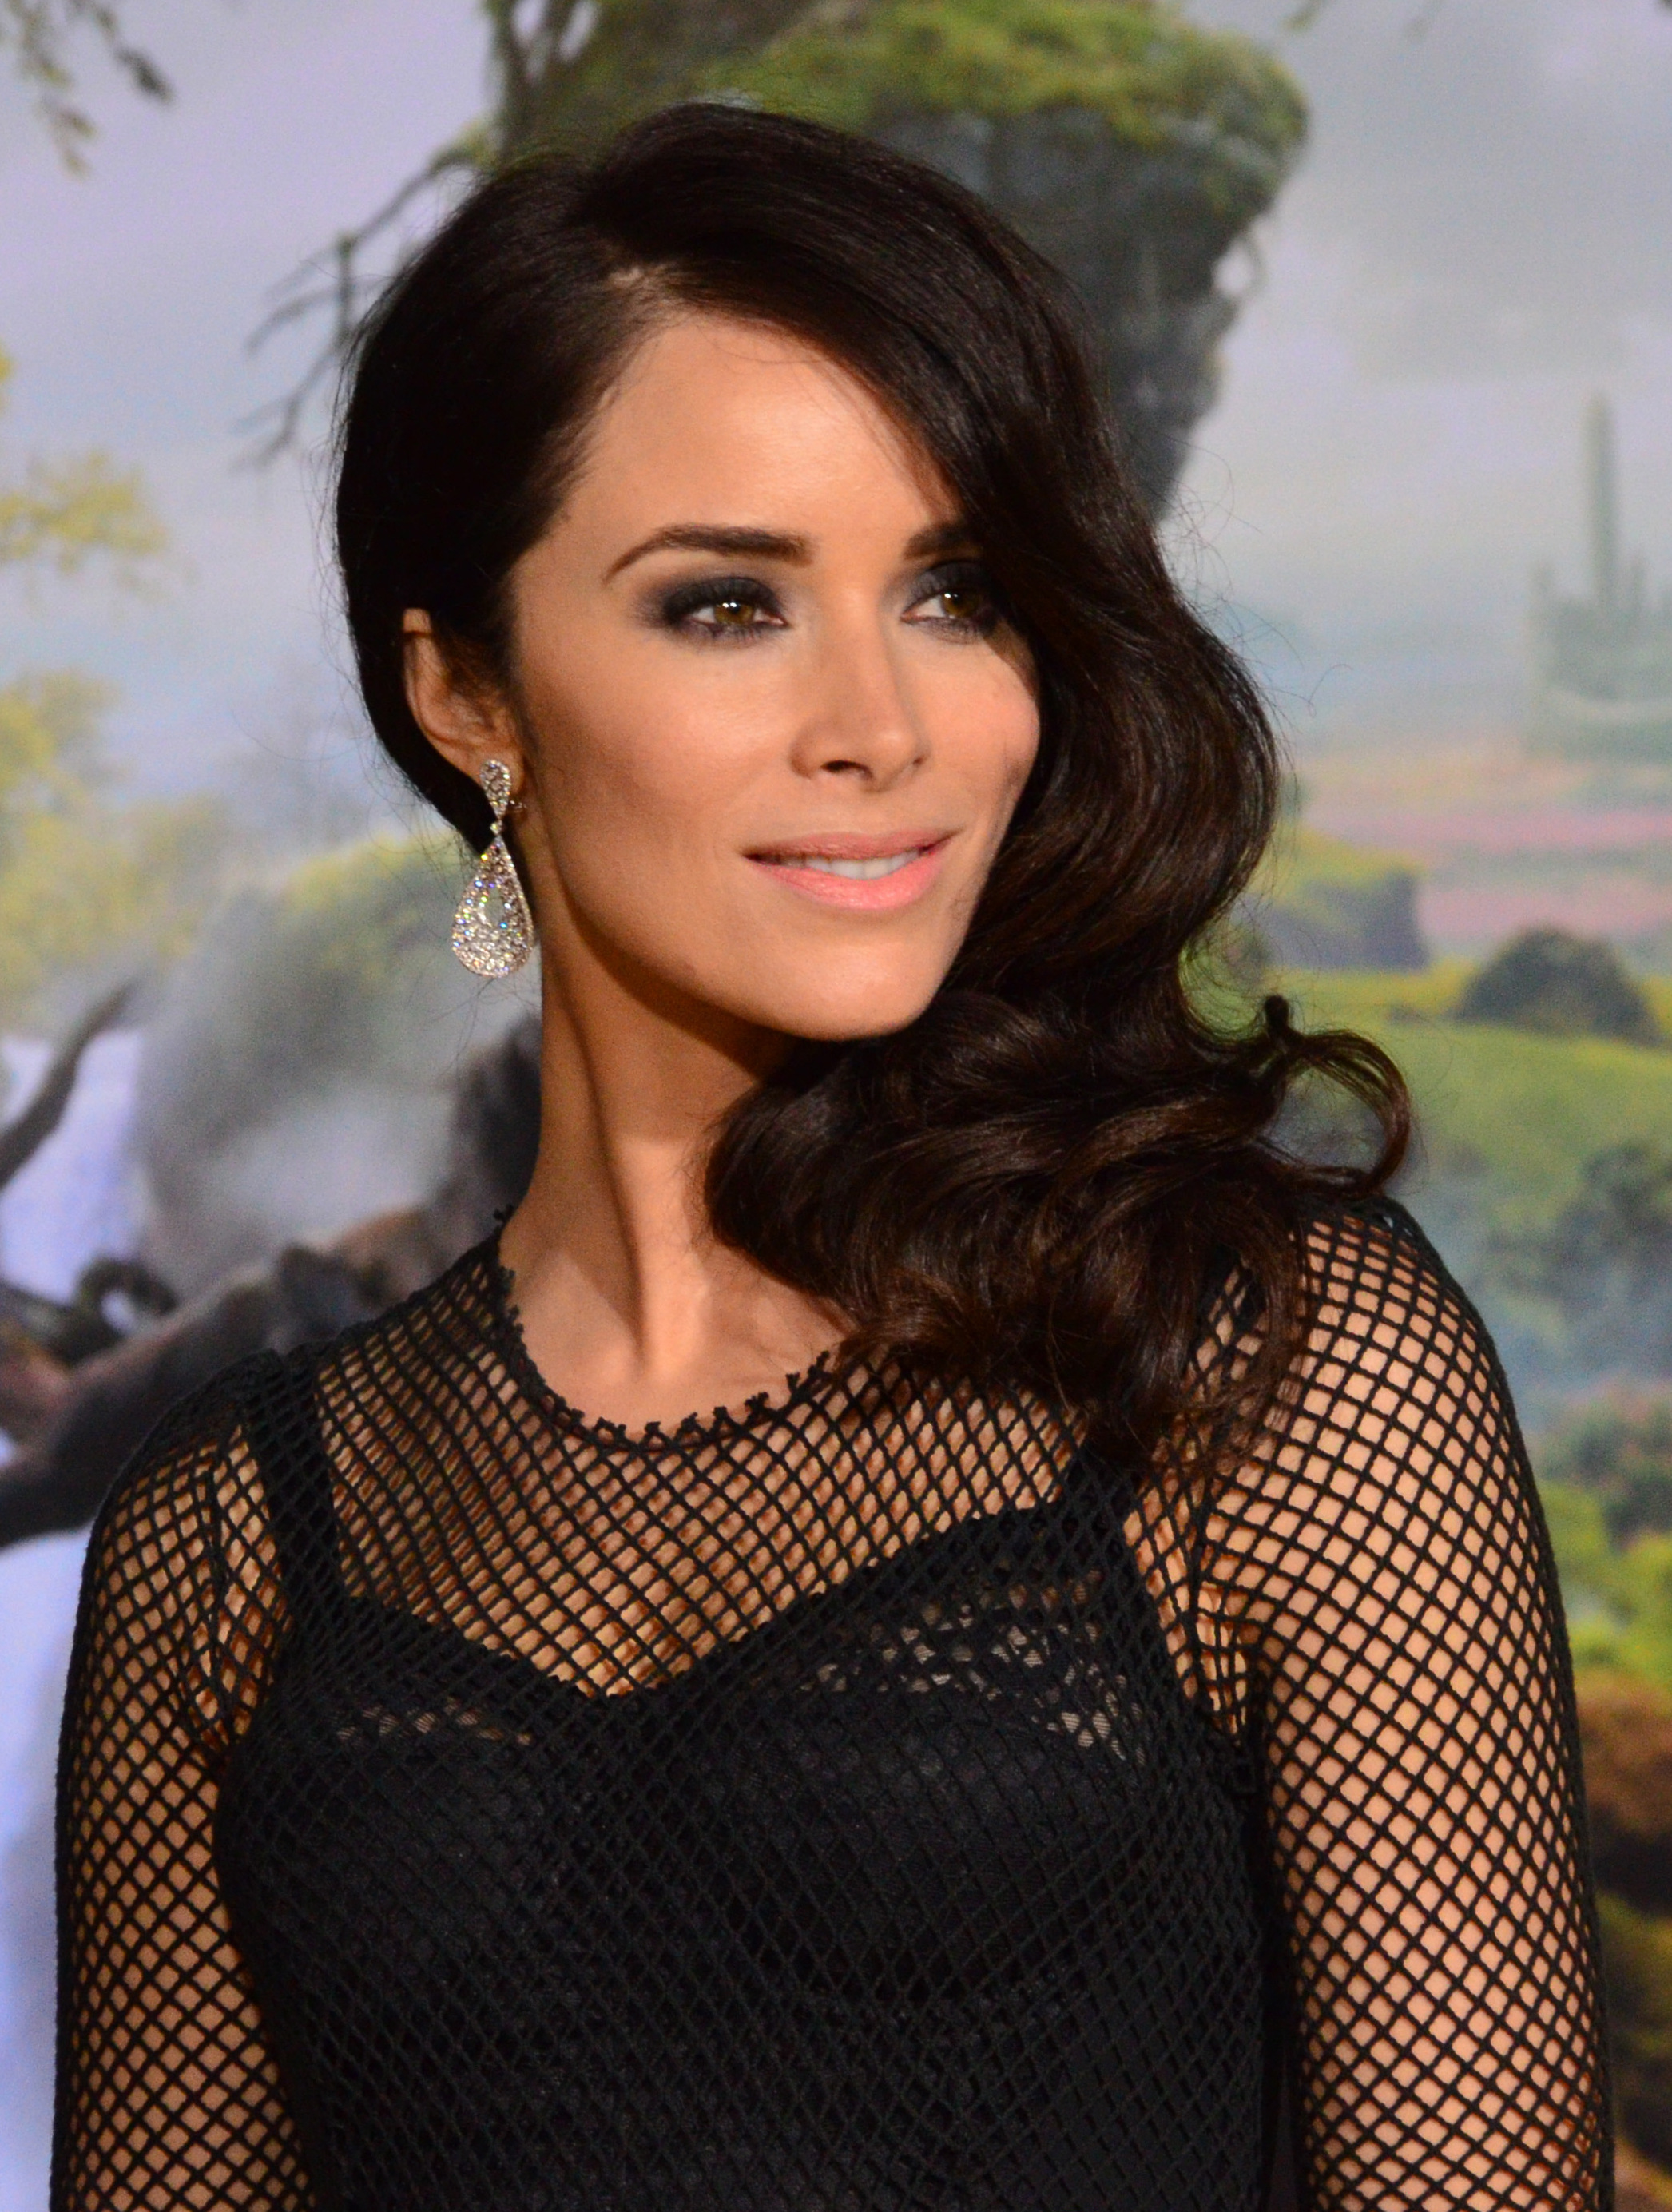 How tall is Abigail Spencer?